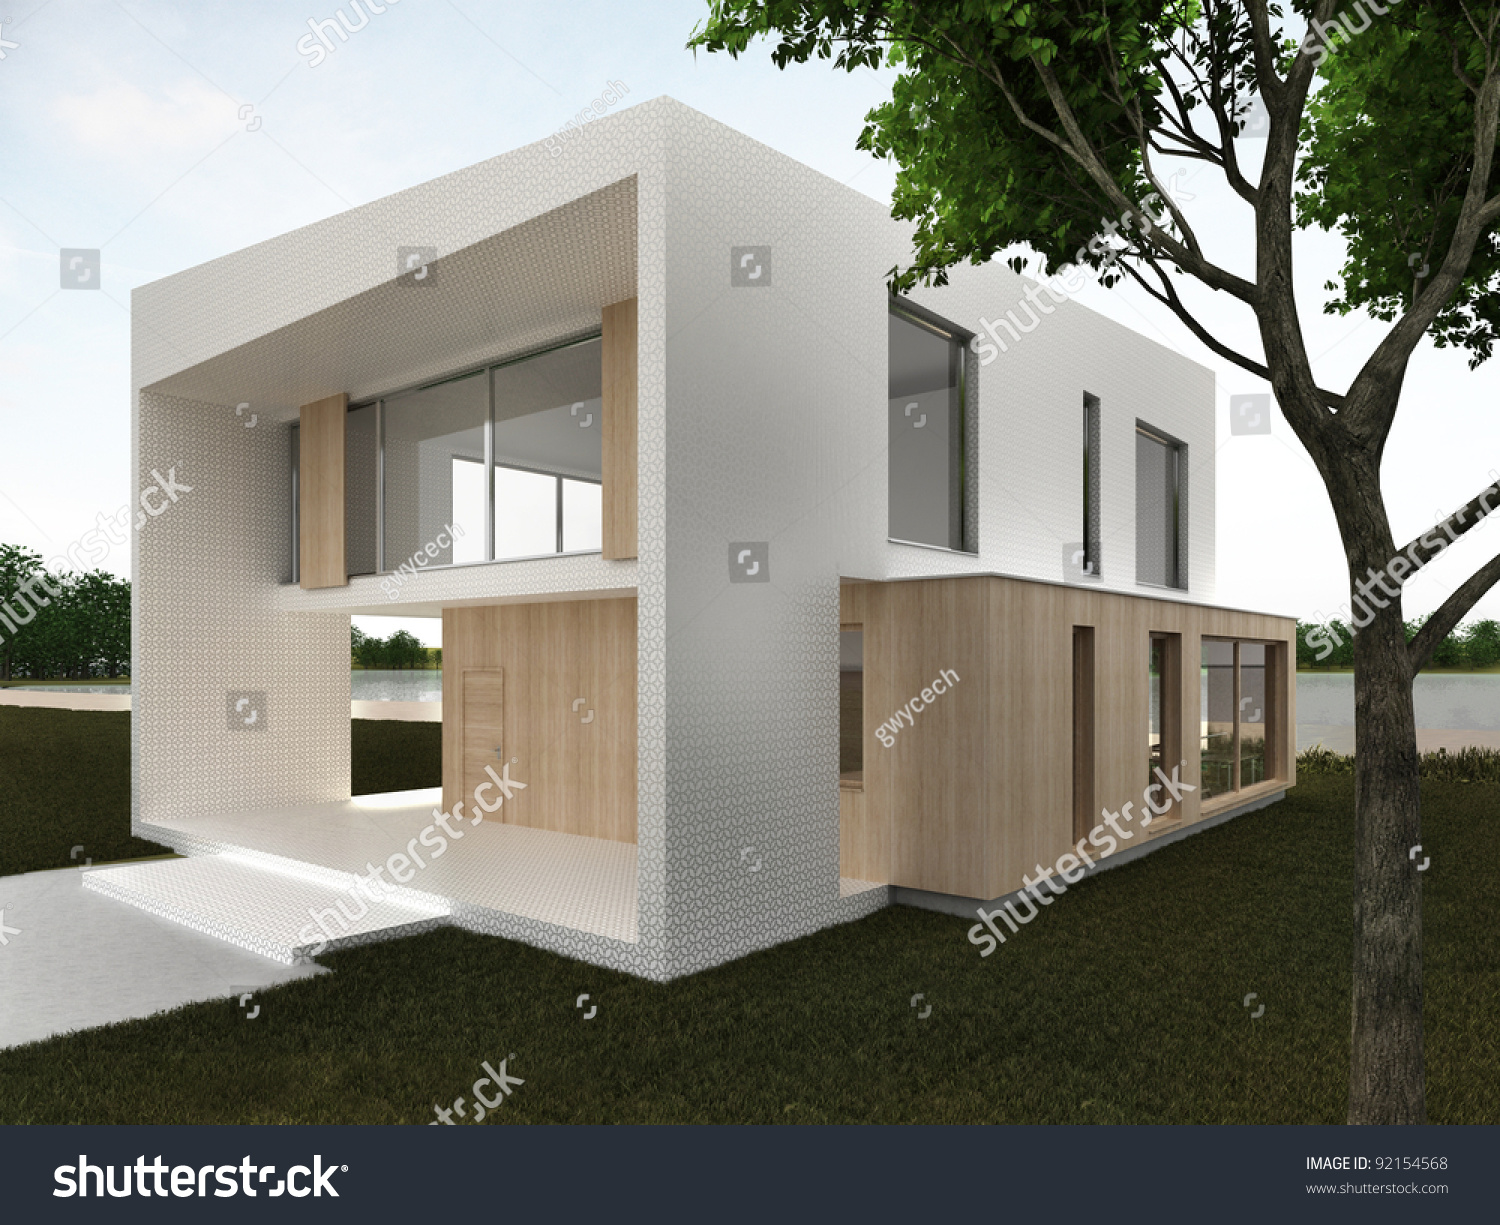 Modern house design - front-yard - computer generated visualization ...